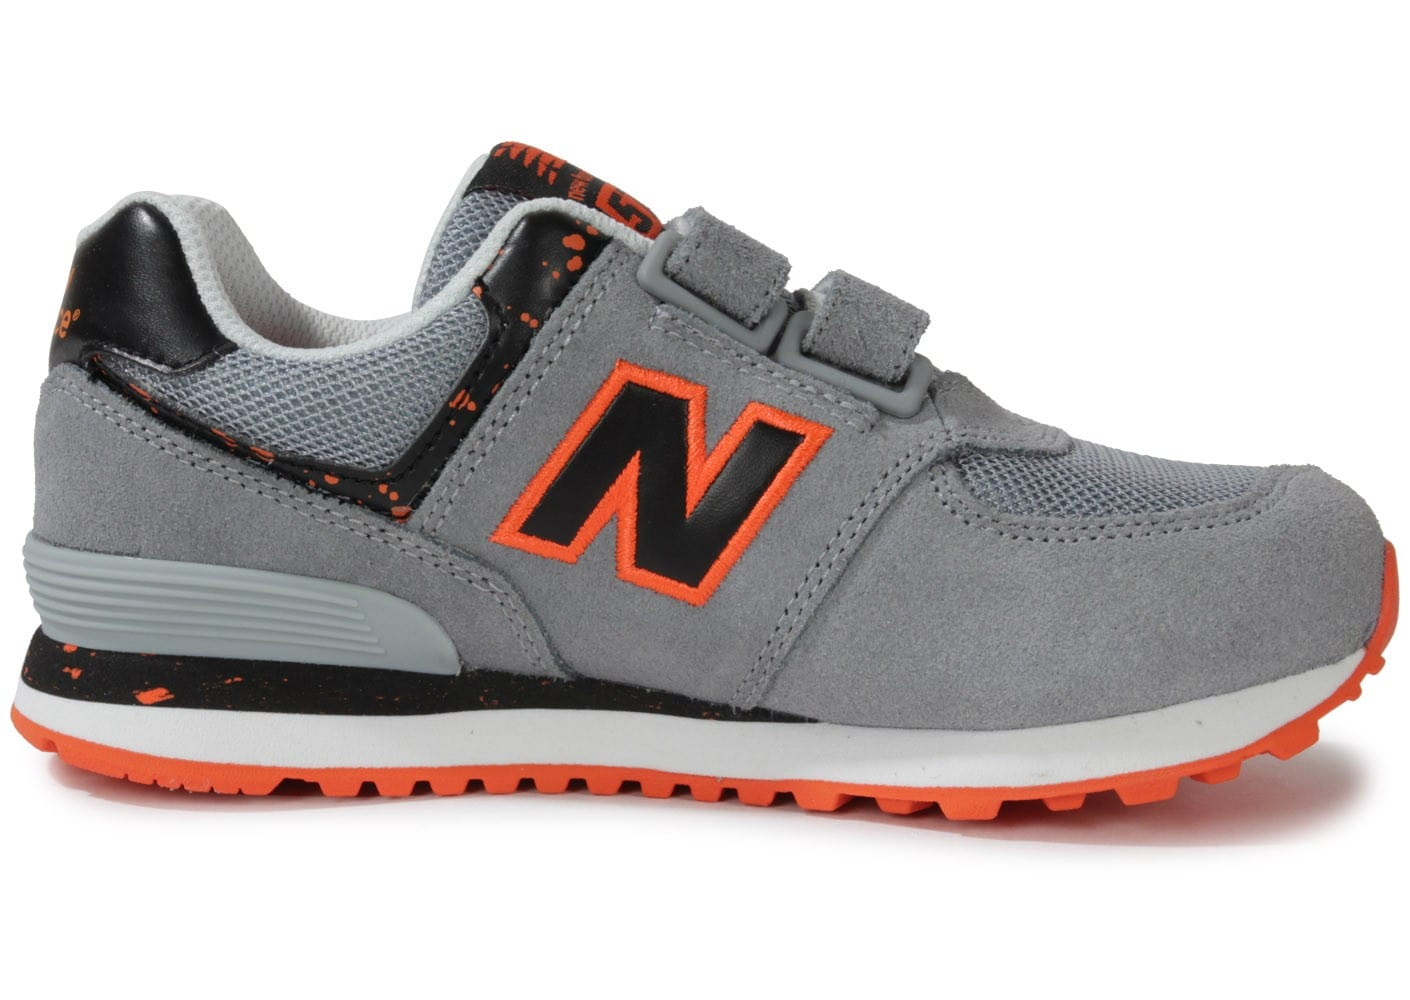 new balance kg574 osy grise orange chaussures chaussures chausport. Black Bedroom Furniture Sets. Home Design Ideas